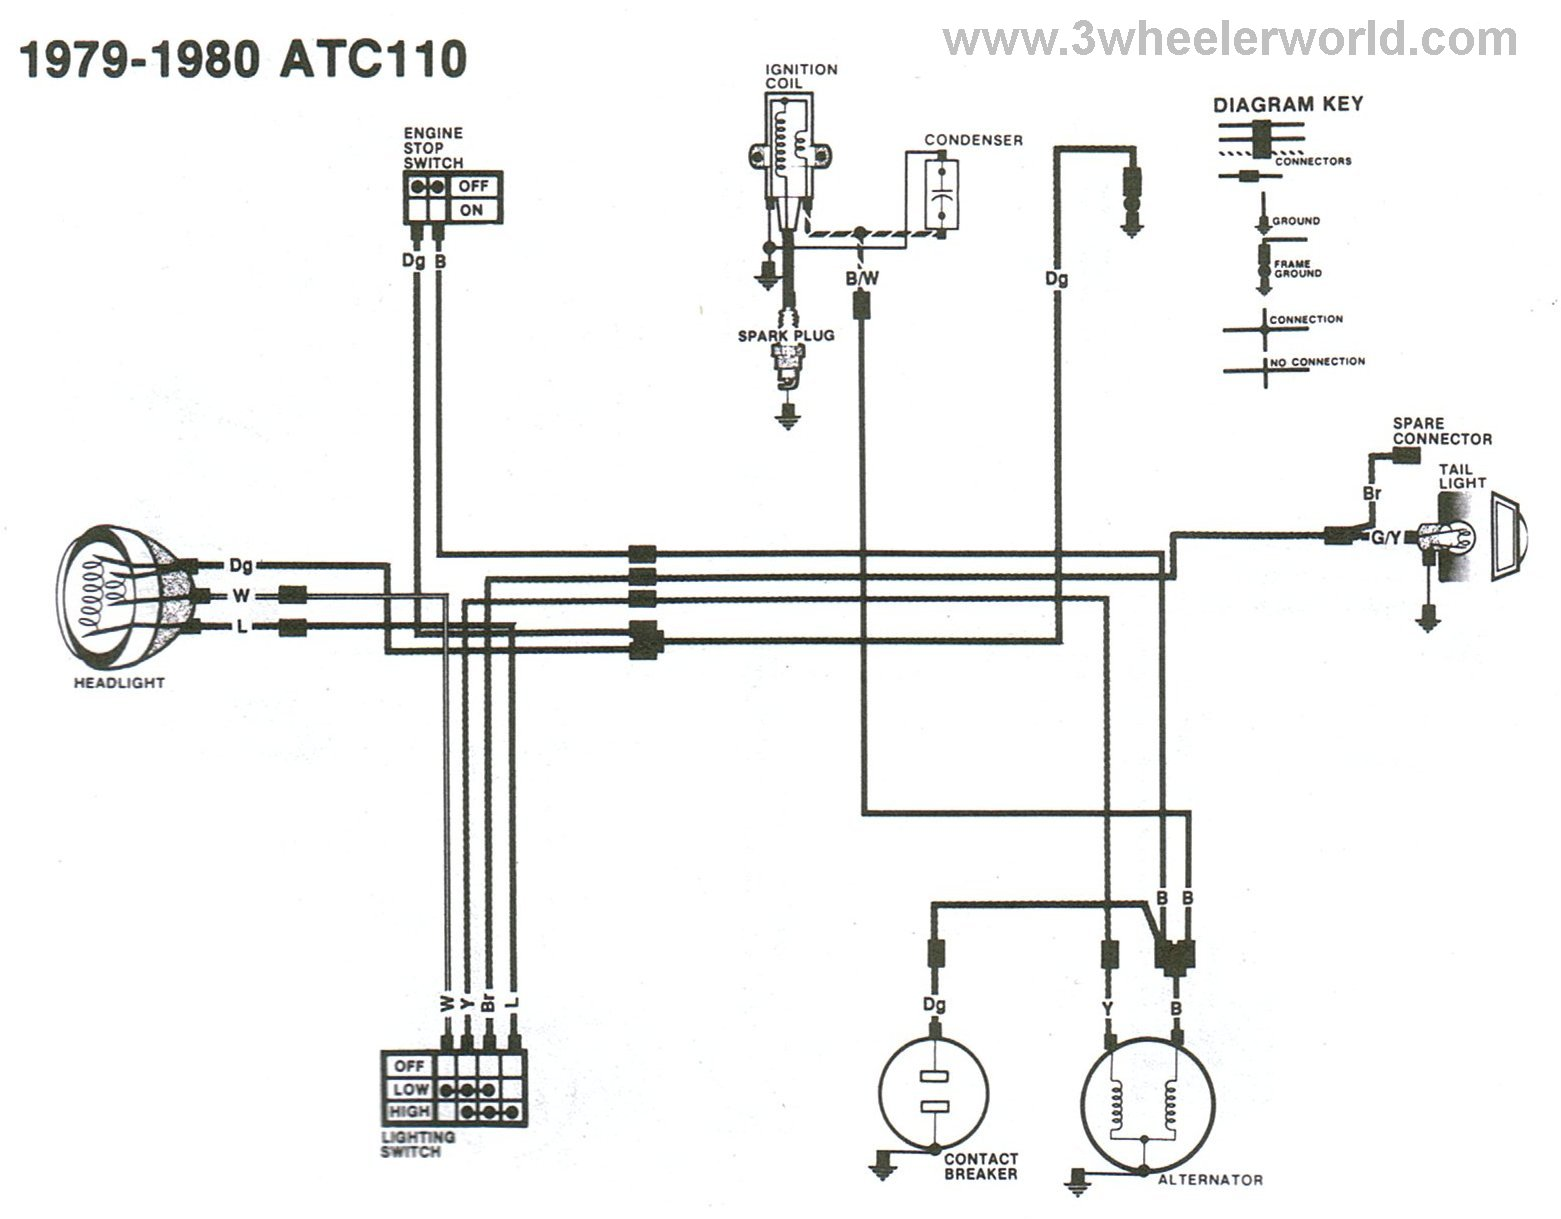 ATC110x79Thru80 3 wheeler world tech help honda wiring diagrams 1985 honda atc 110 wiring diagram at virtualis.co